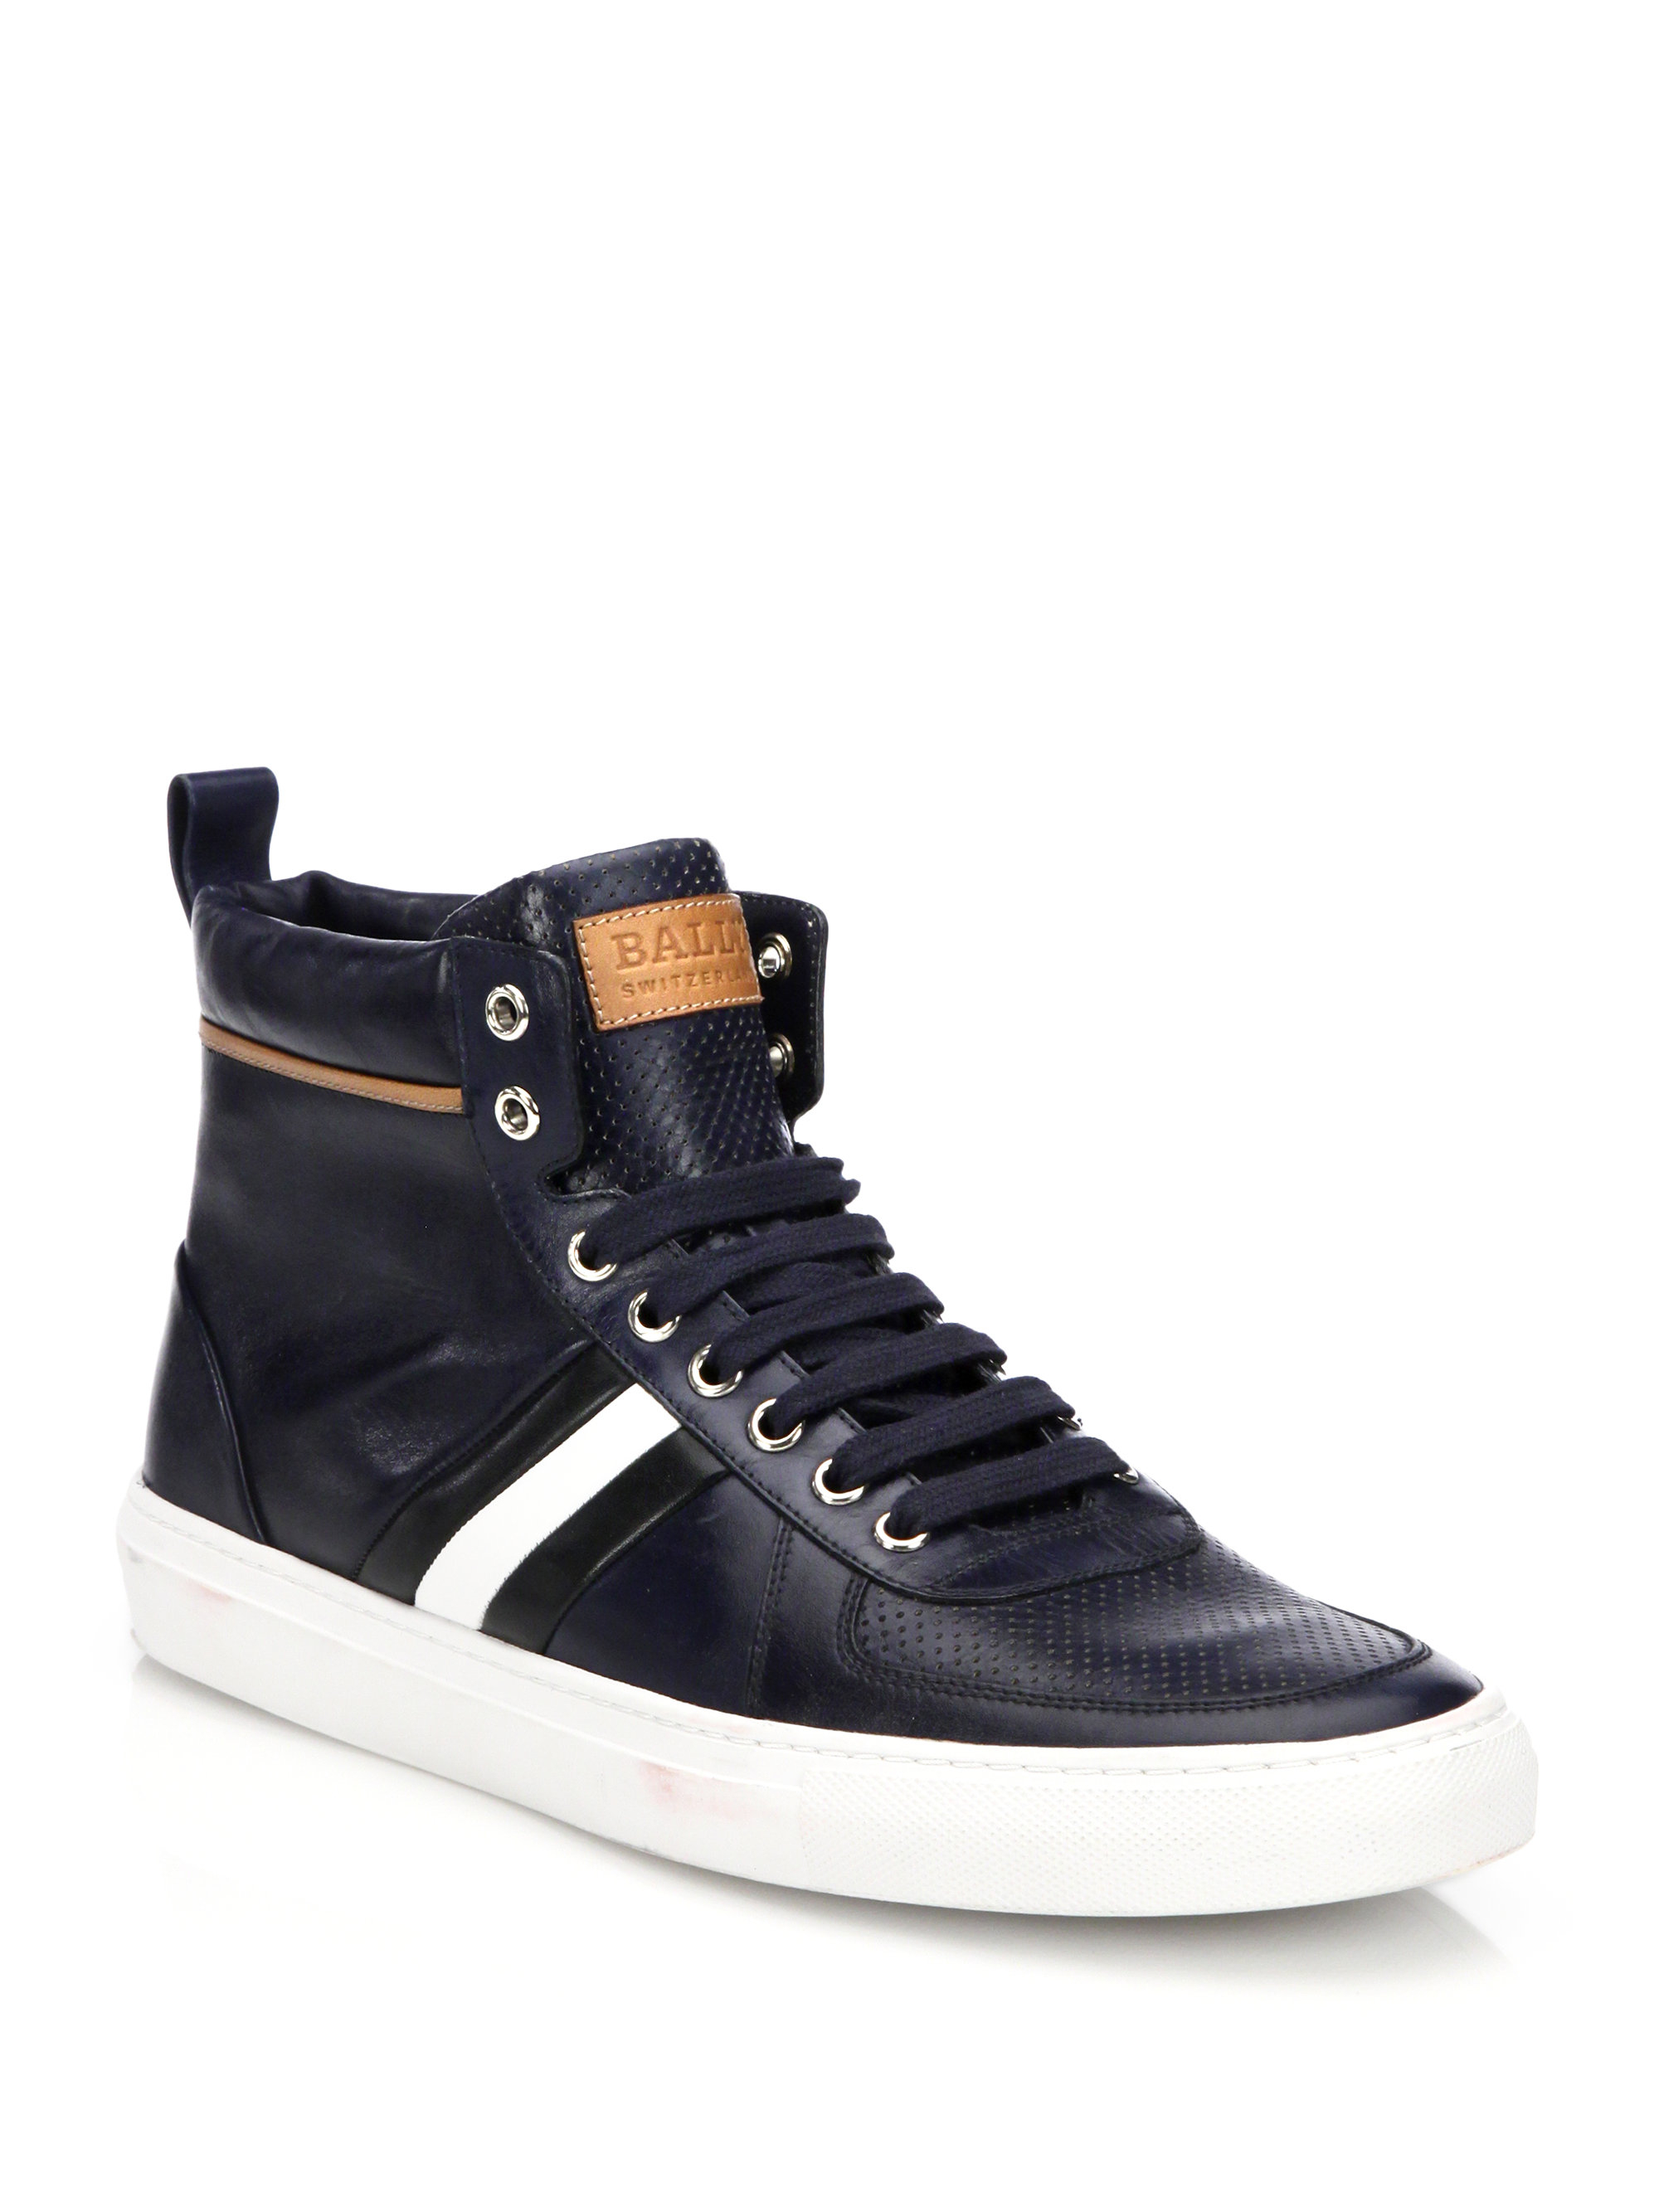 Bally Perforated Leather High-top Sneakers In Blue